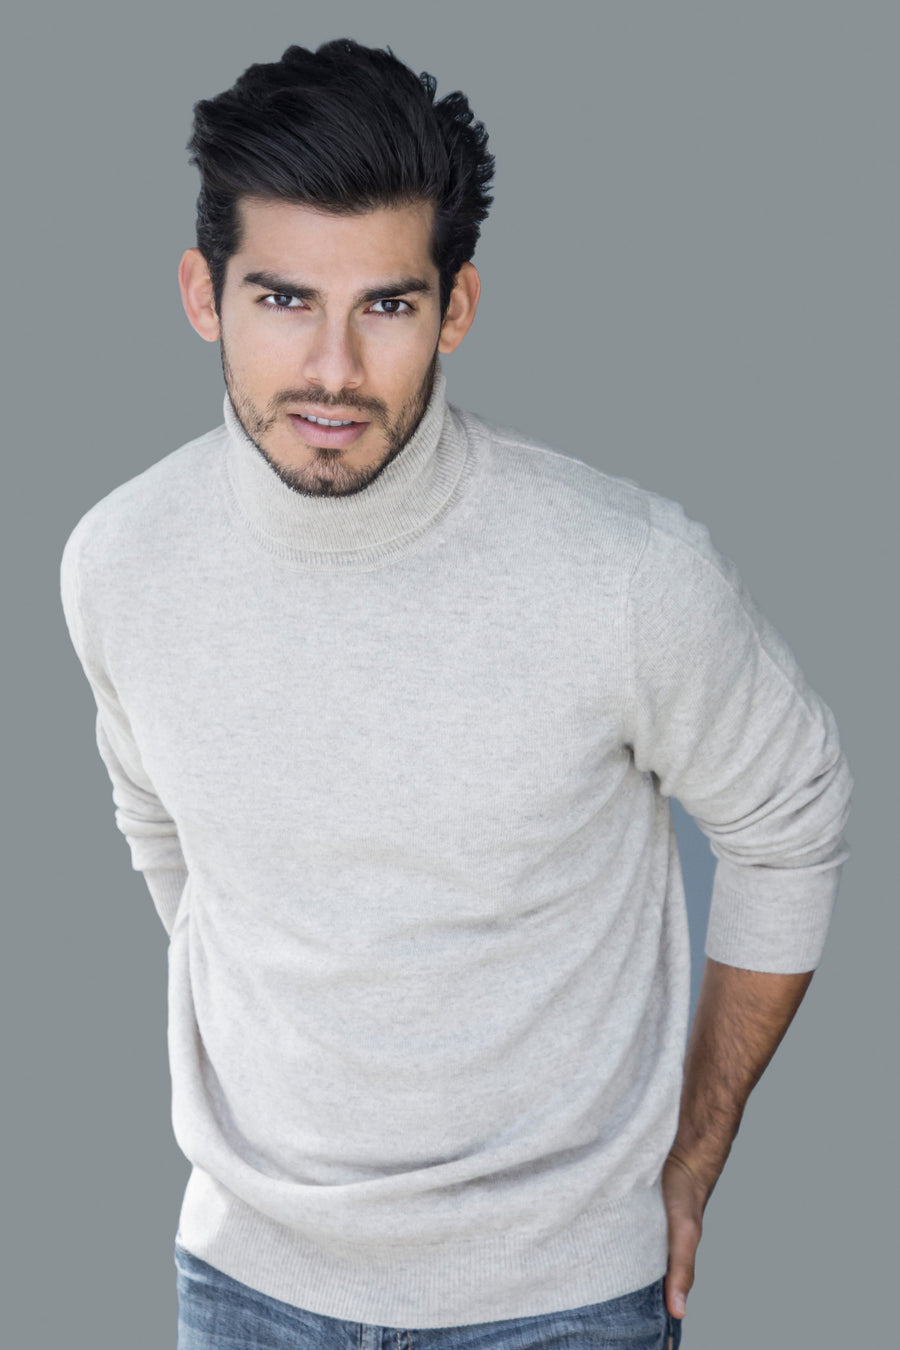 pine cashmere mens classic 100% pure organic cashmere turtleneck sweater in beige